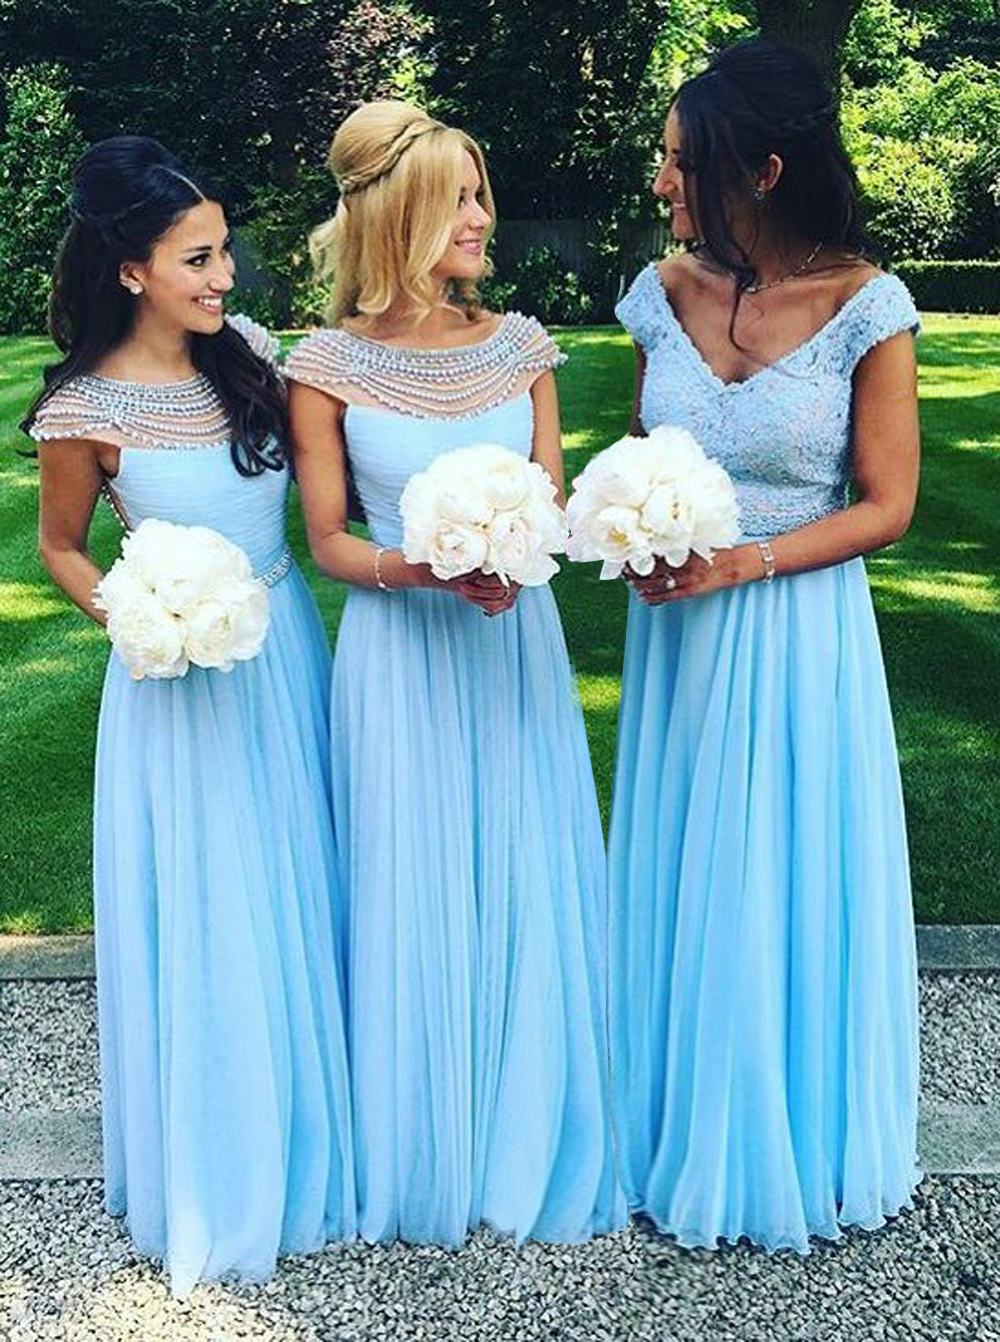 A-Line Boat Neck Floor-Length Cap Sleeves Blue Chiffon Bridesmaid Dress with Pearls фото